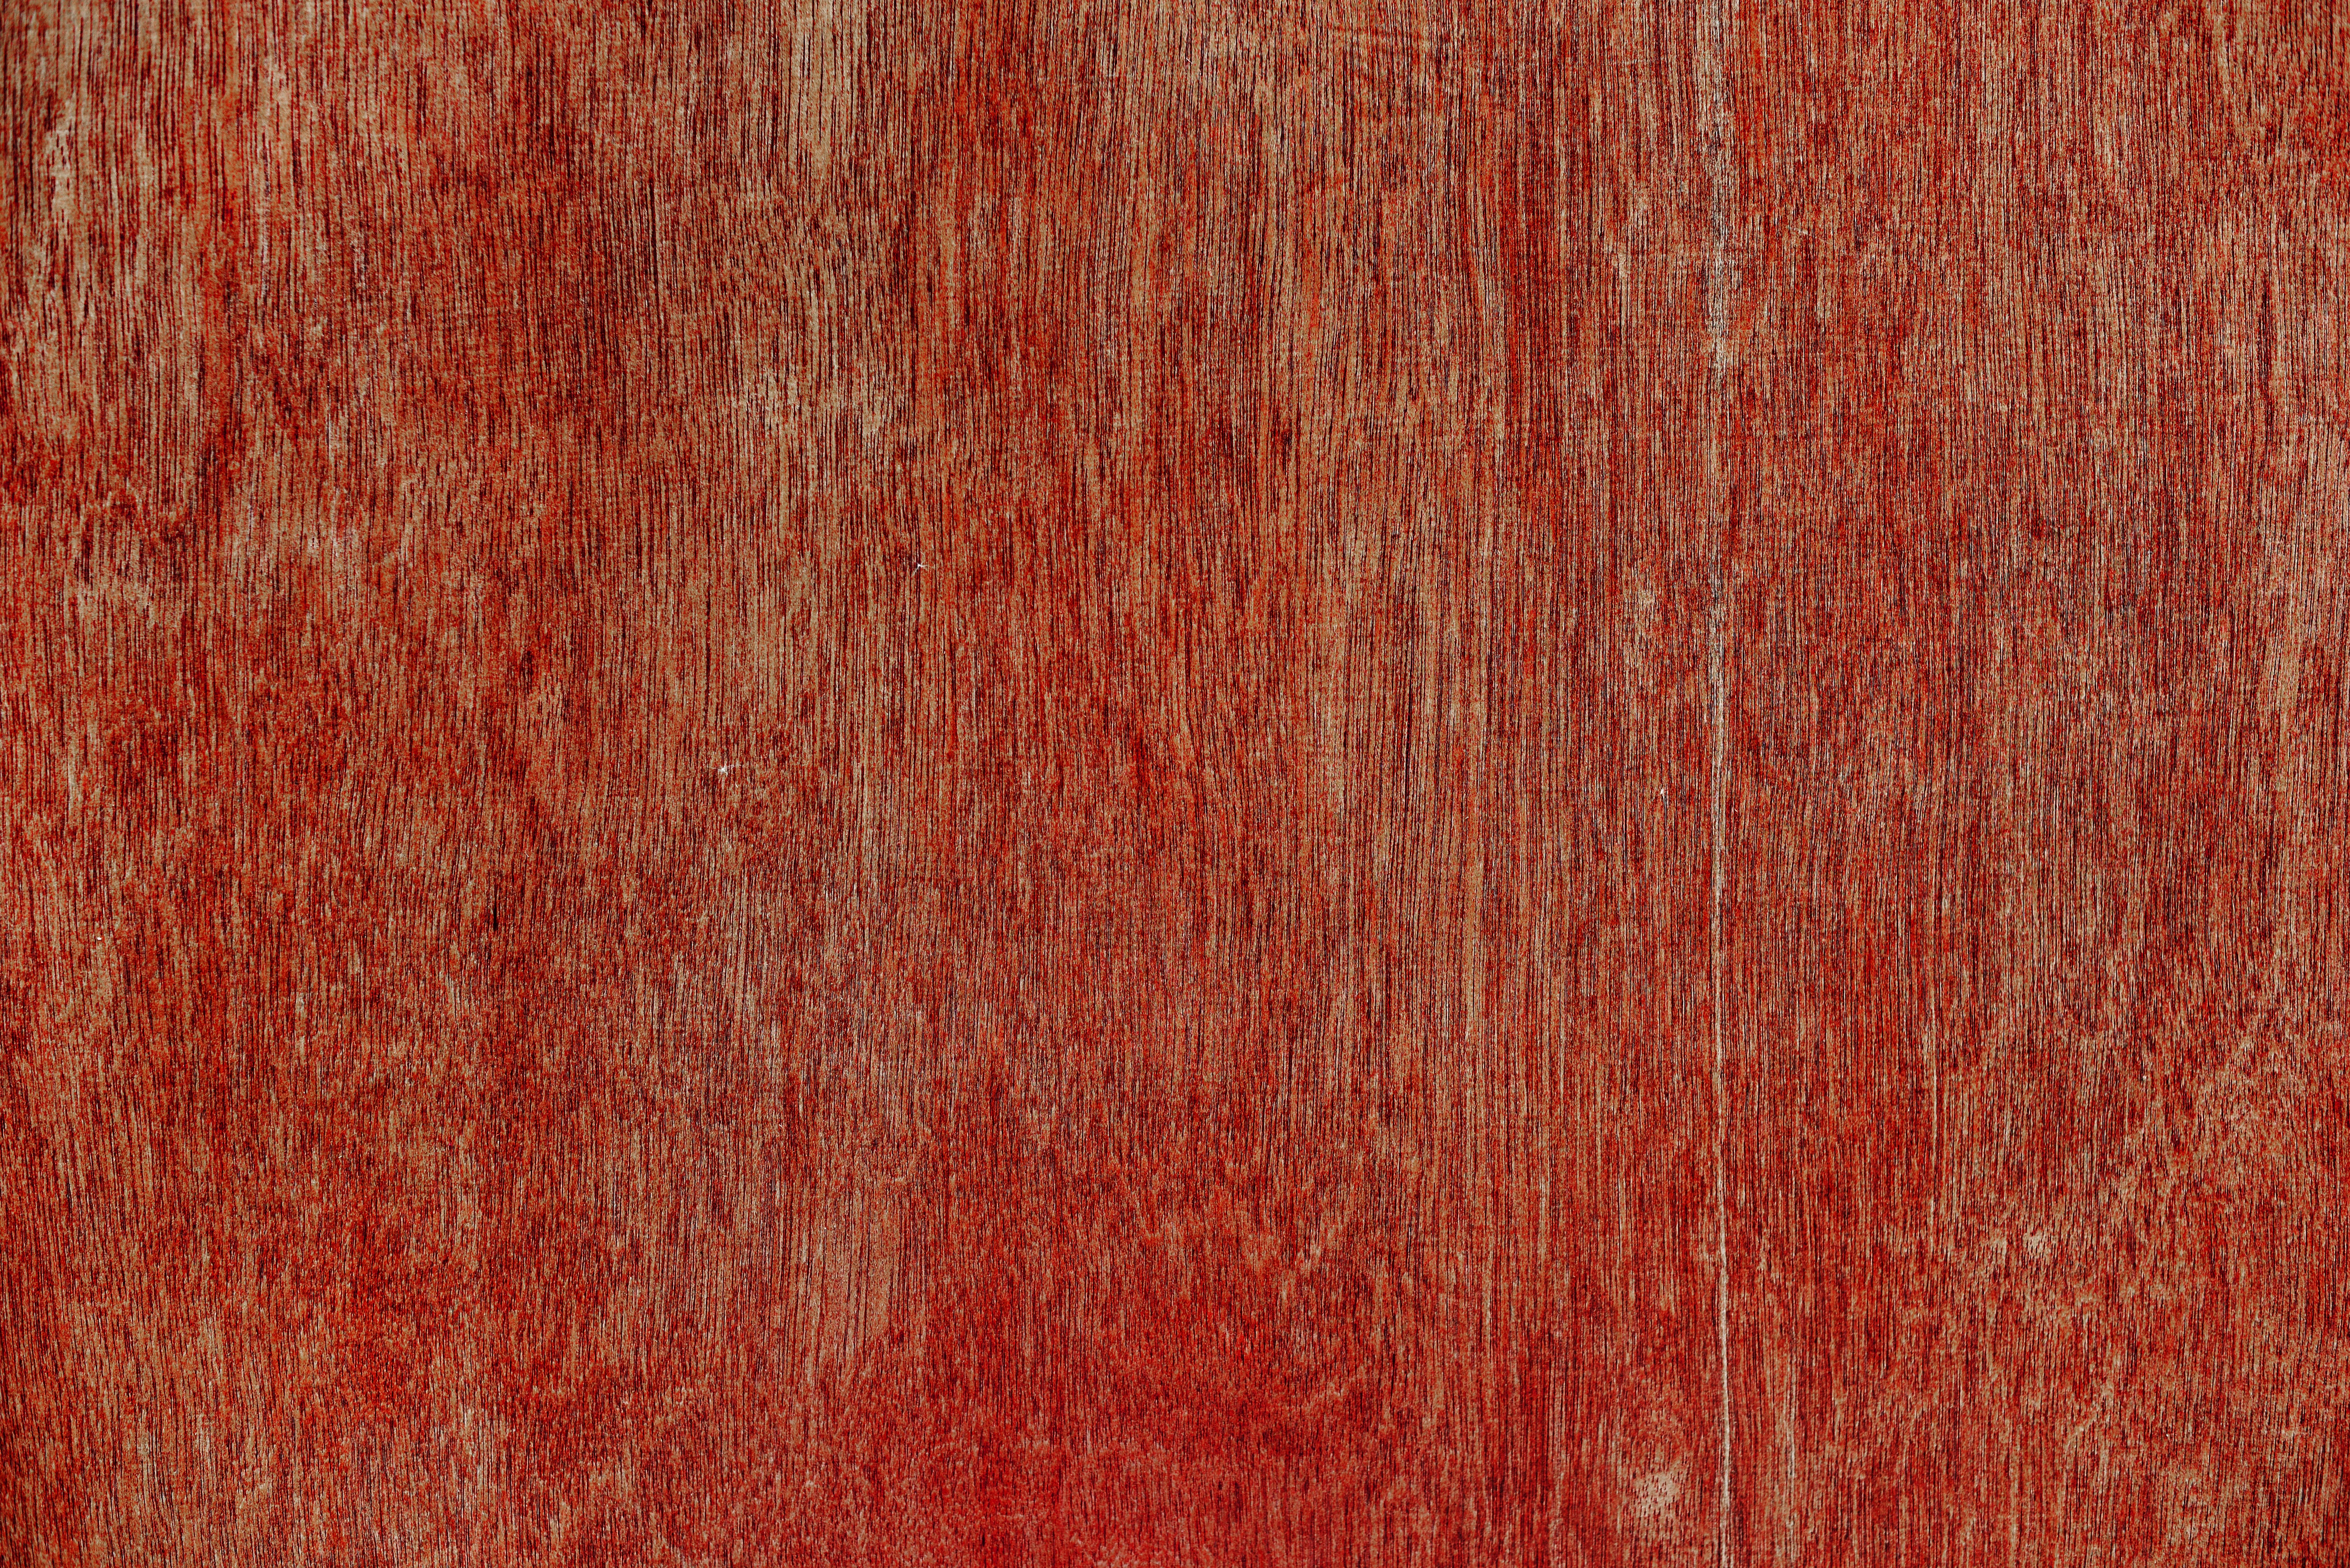 Red textile photo